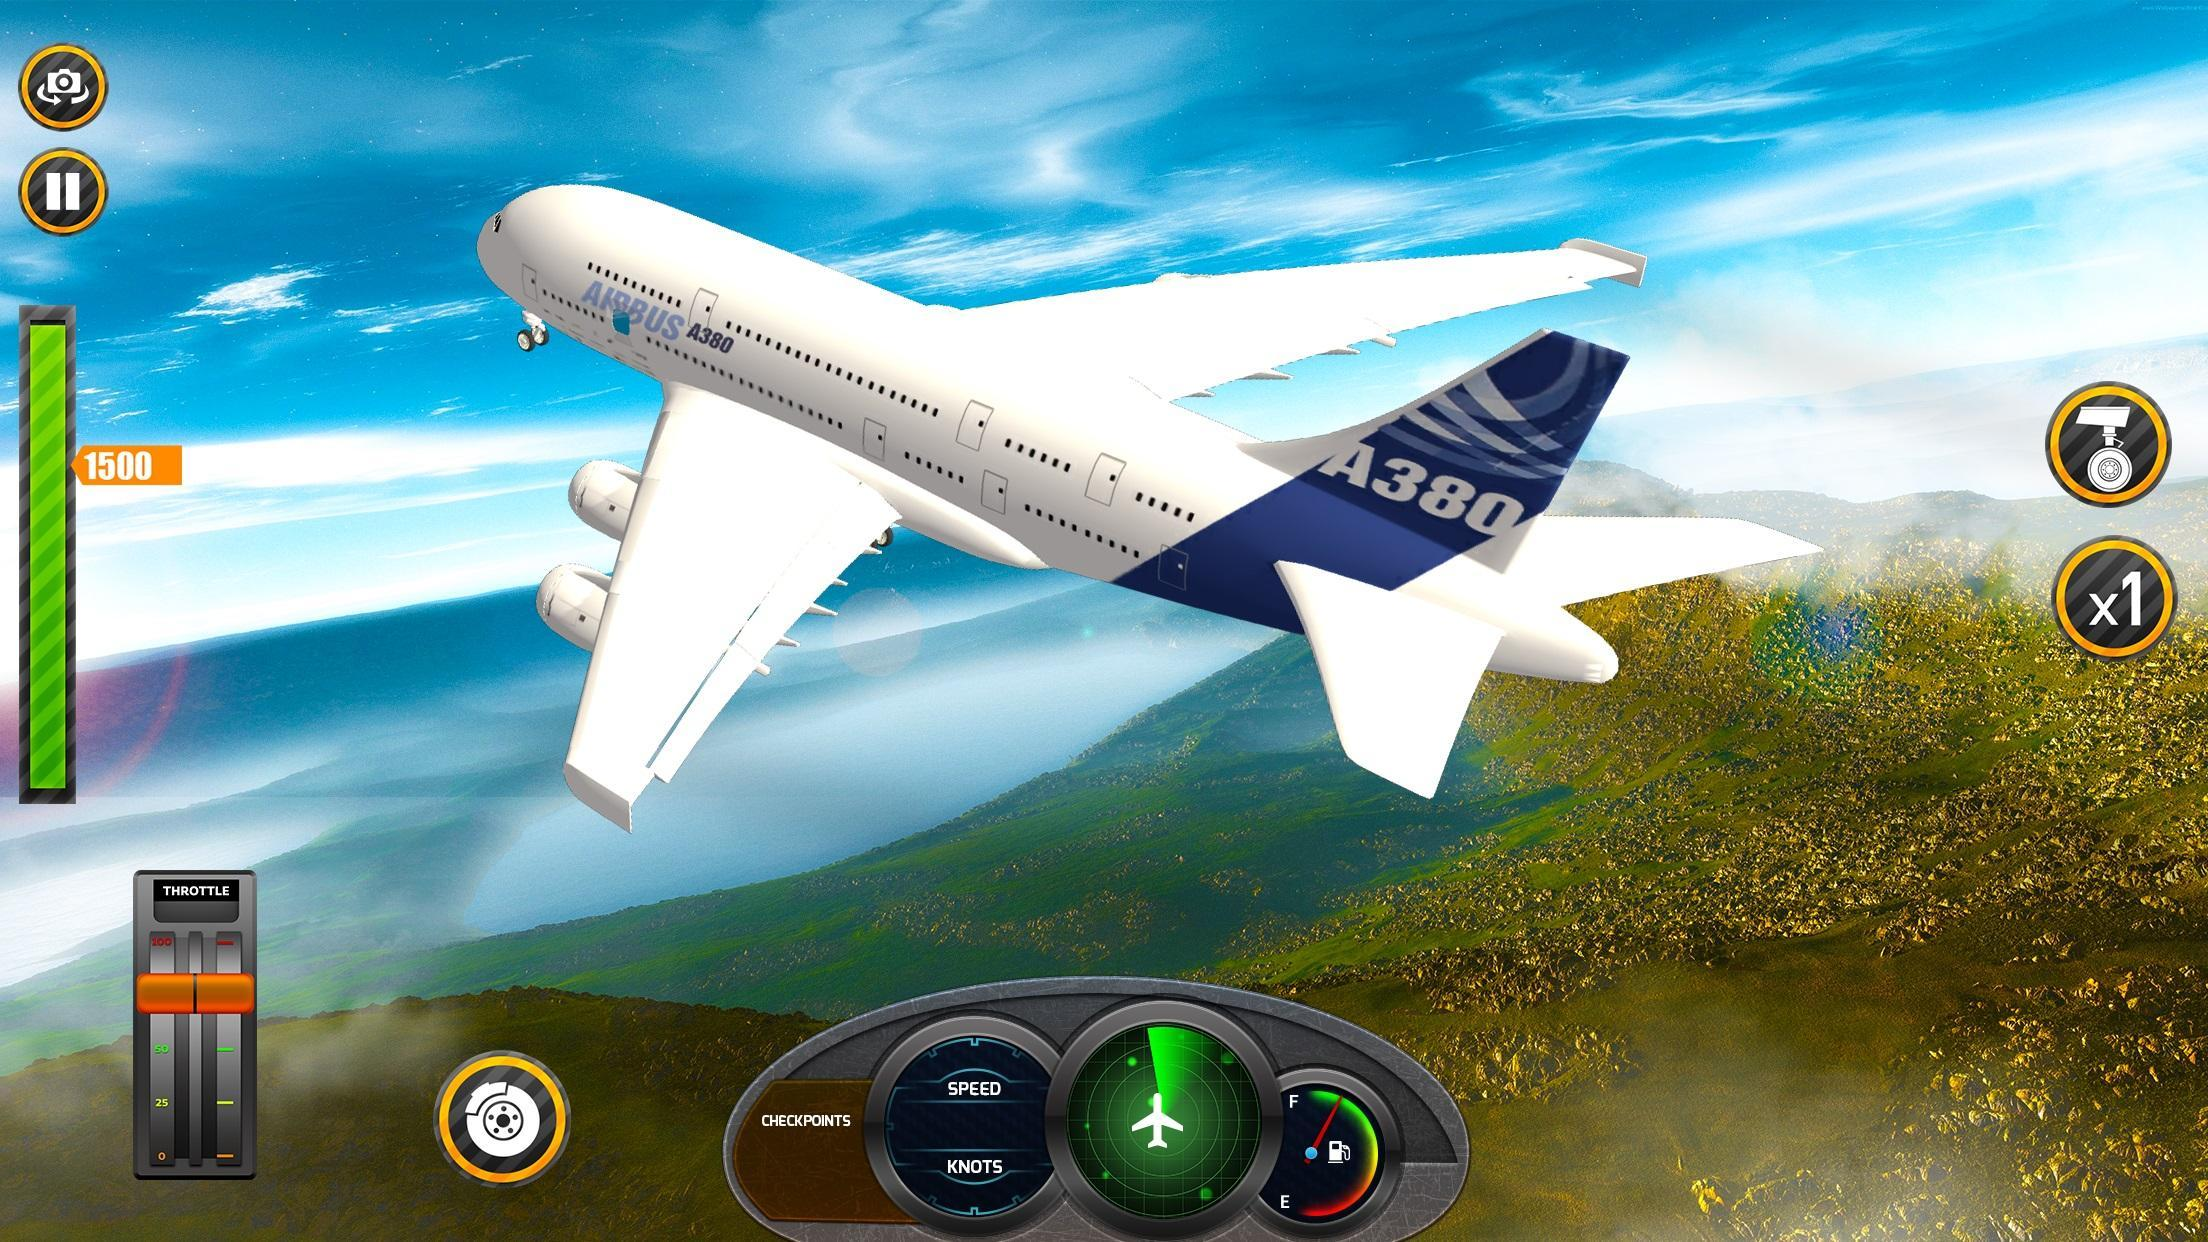 Airplane Real Flight Simulator 2020 Plane Games 5.4 Screenshot 1